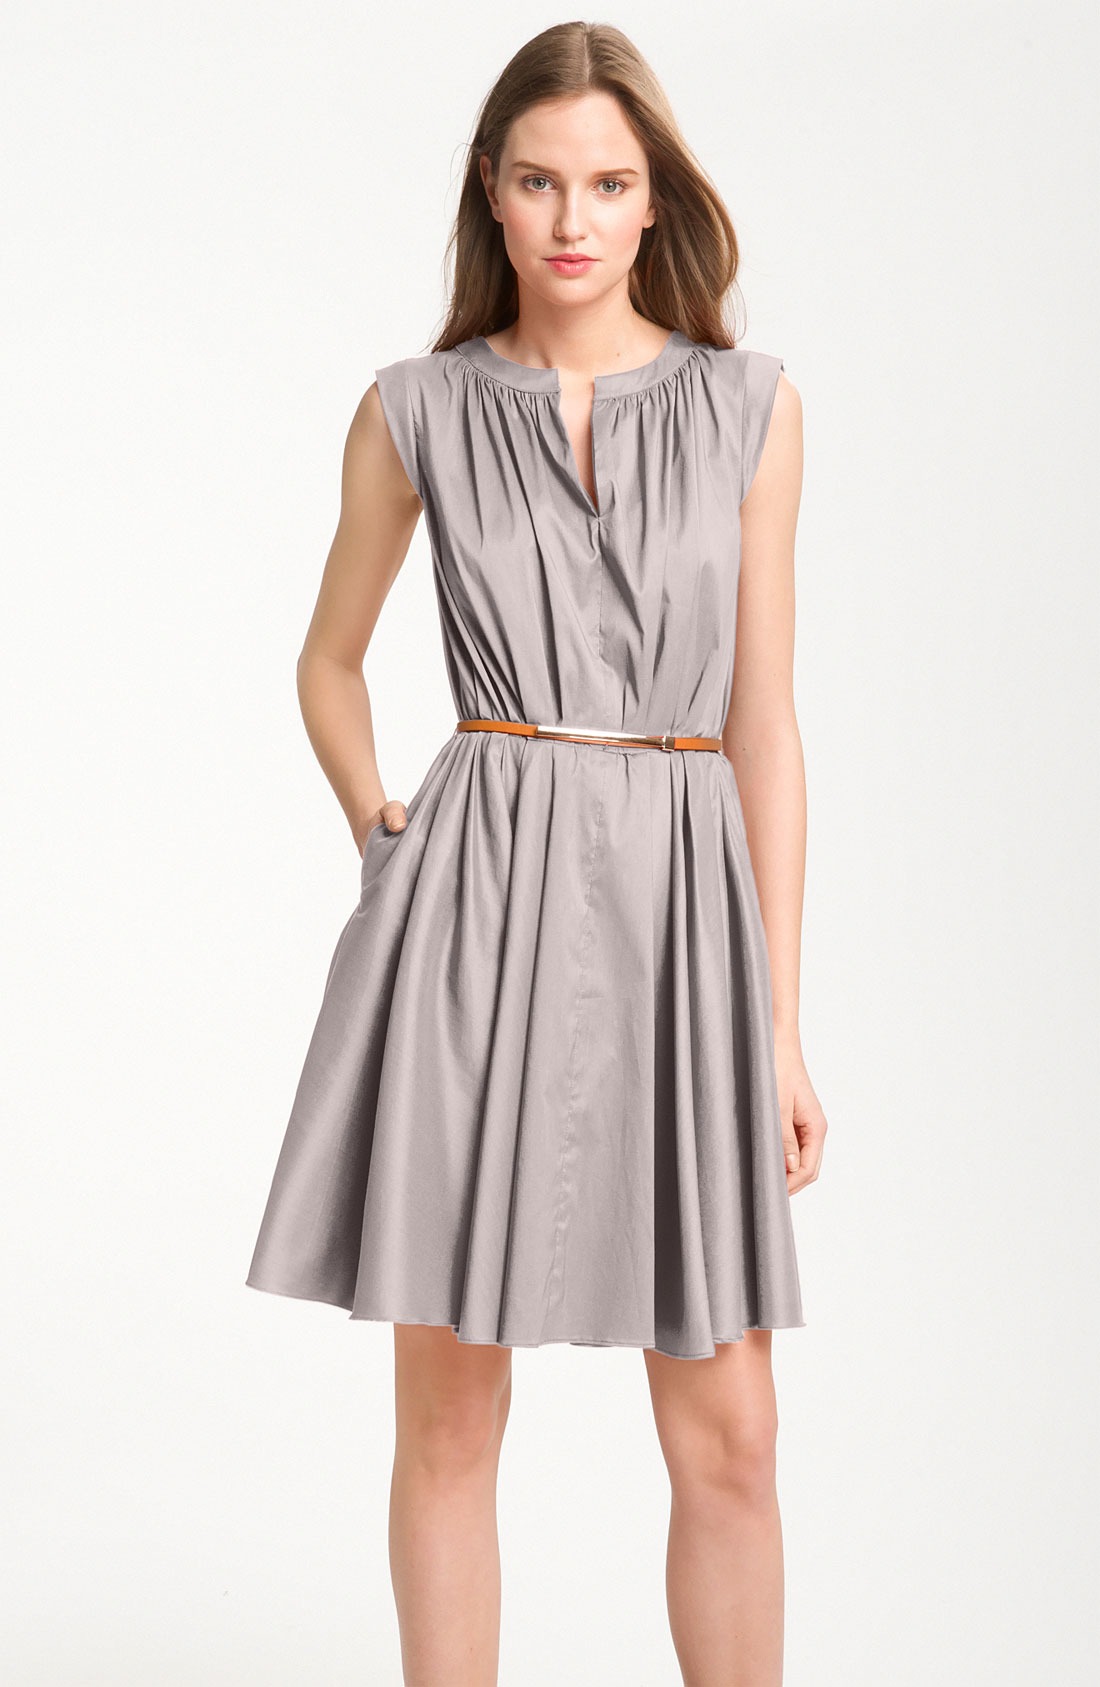 fall wedding guest dress trends wedding party dresses Fall Party Dresses Fashion Trends Ask